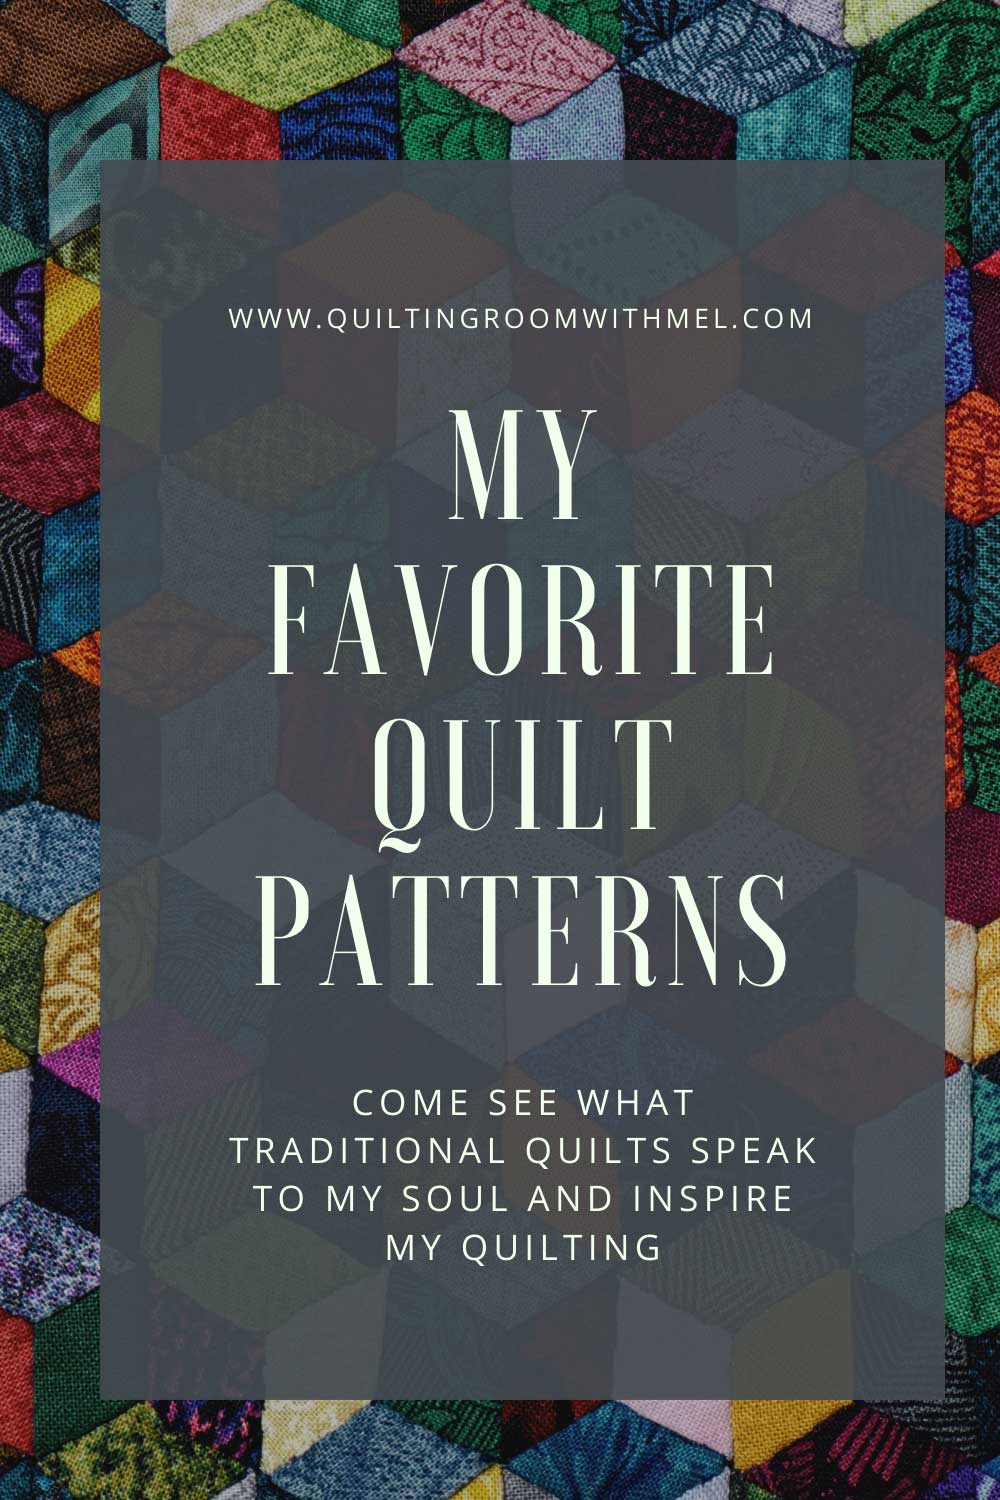 Traditional quilt patterns speak to my heart, they are what my mom and grandmothers made.  Come learn what my top 10 favorite quilt patterns are and why they inspire me.